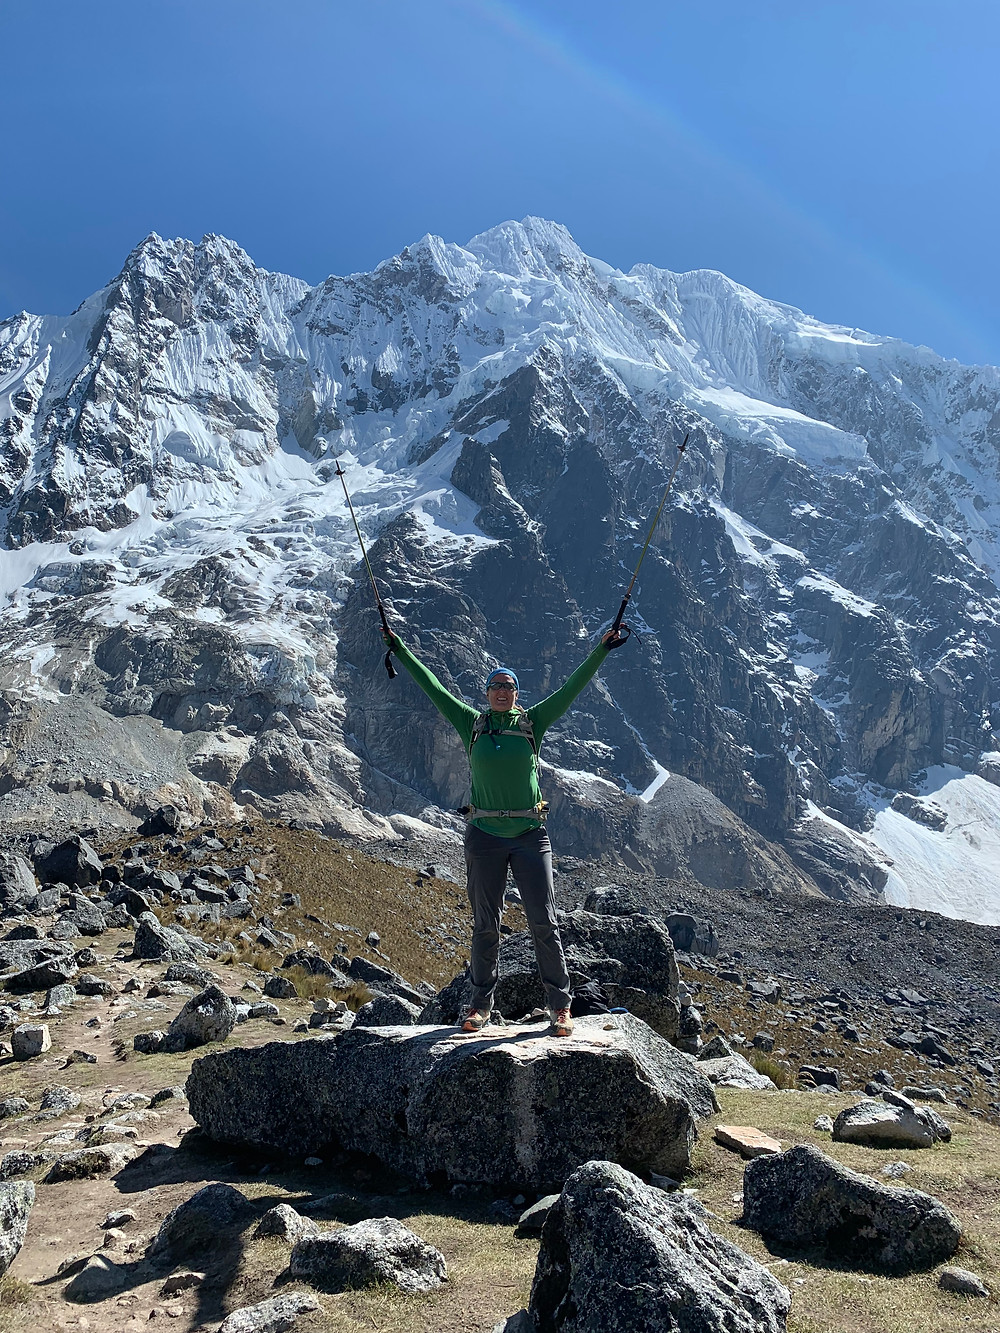 Celebrating arrival at Salkantay Pass